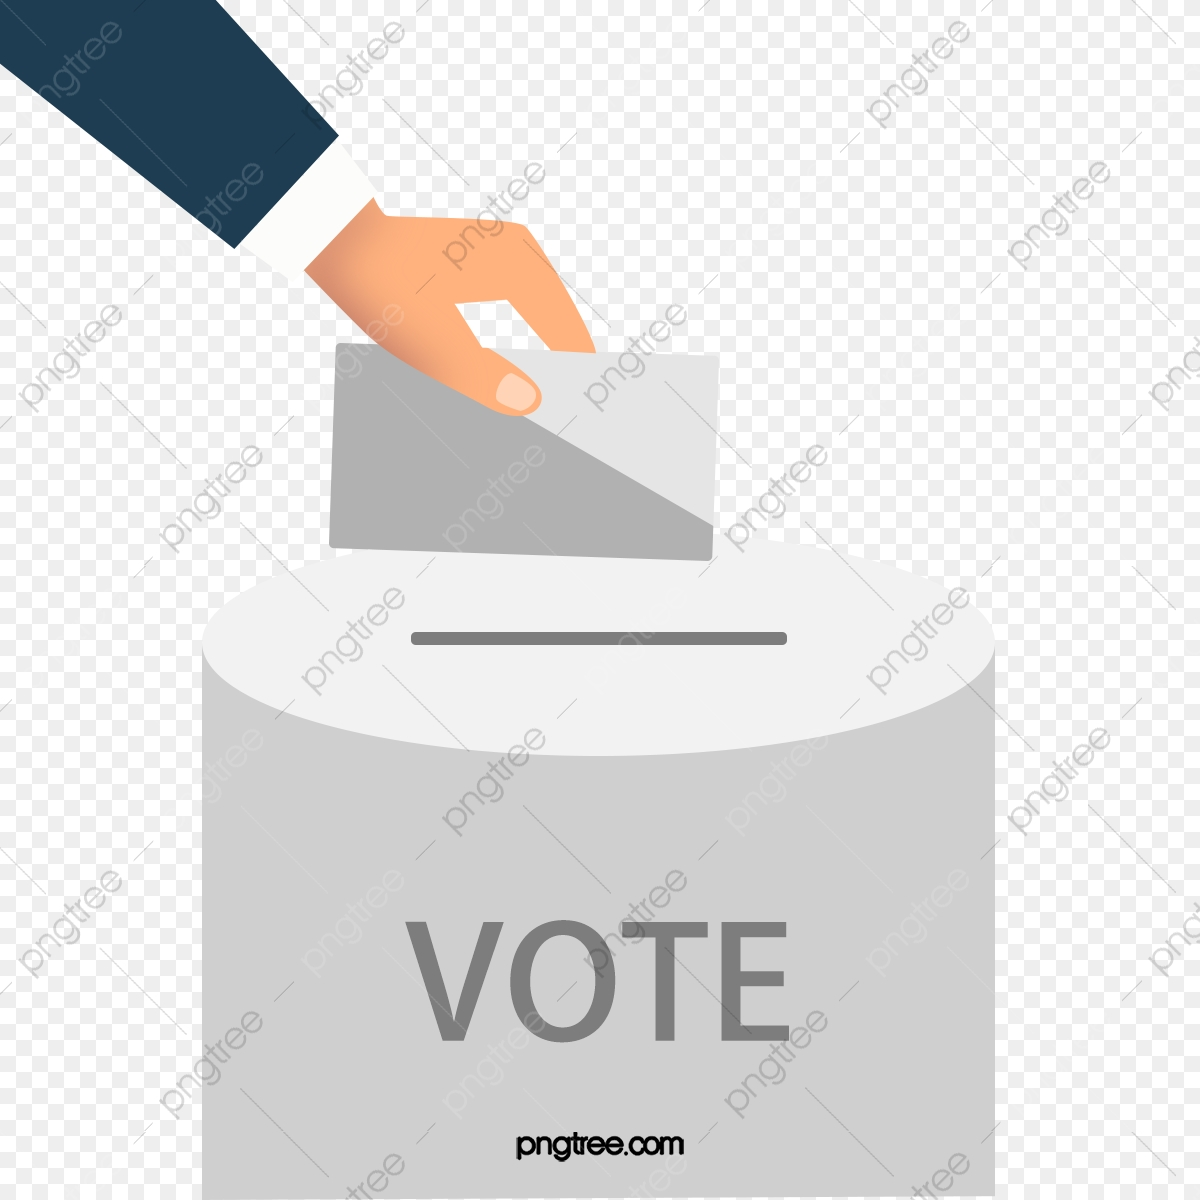 Vote Png Images Vector And Psd Files Free Download On Pngtree